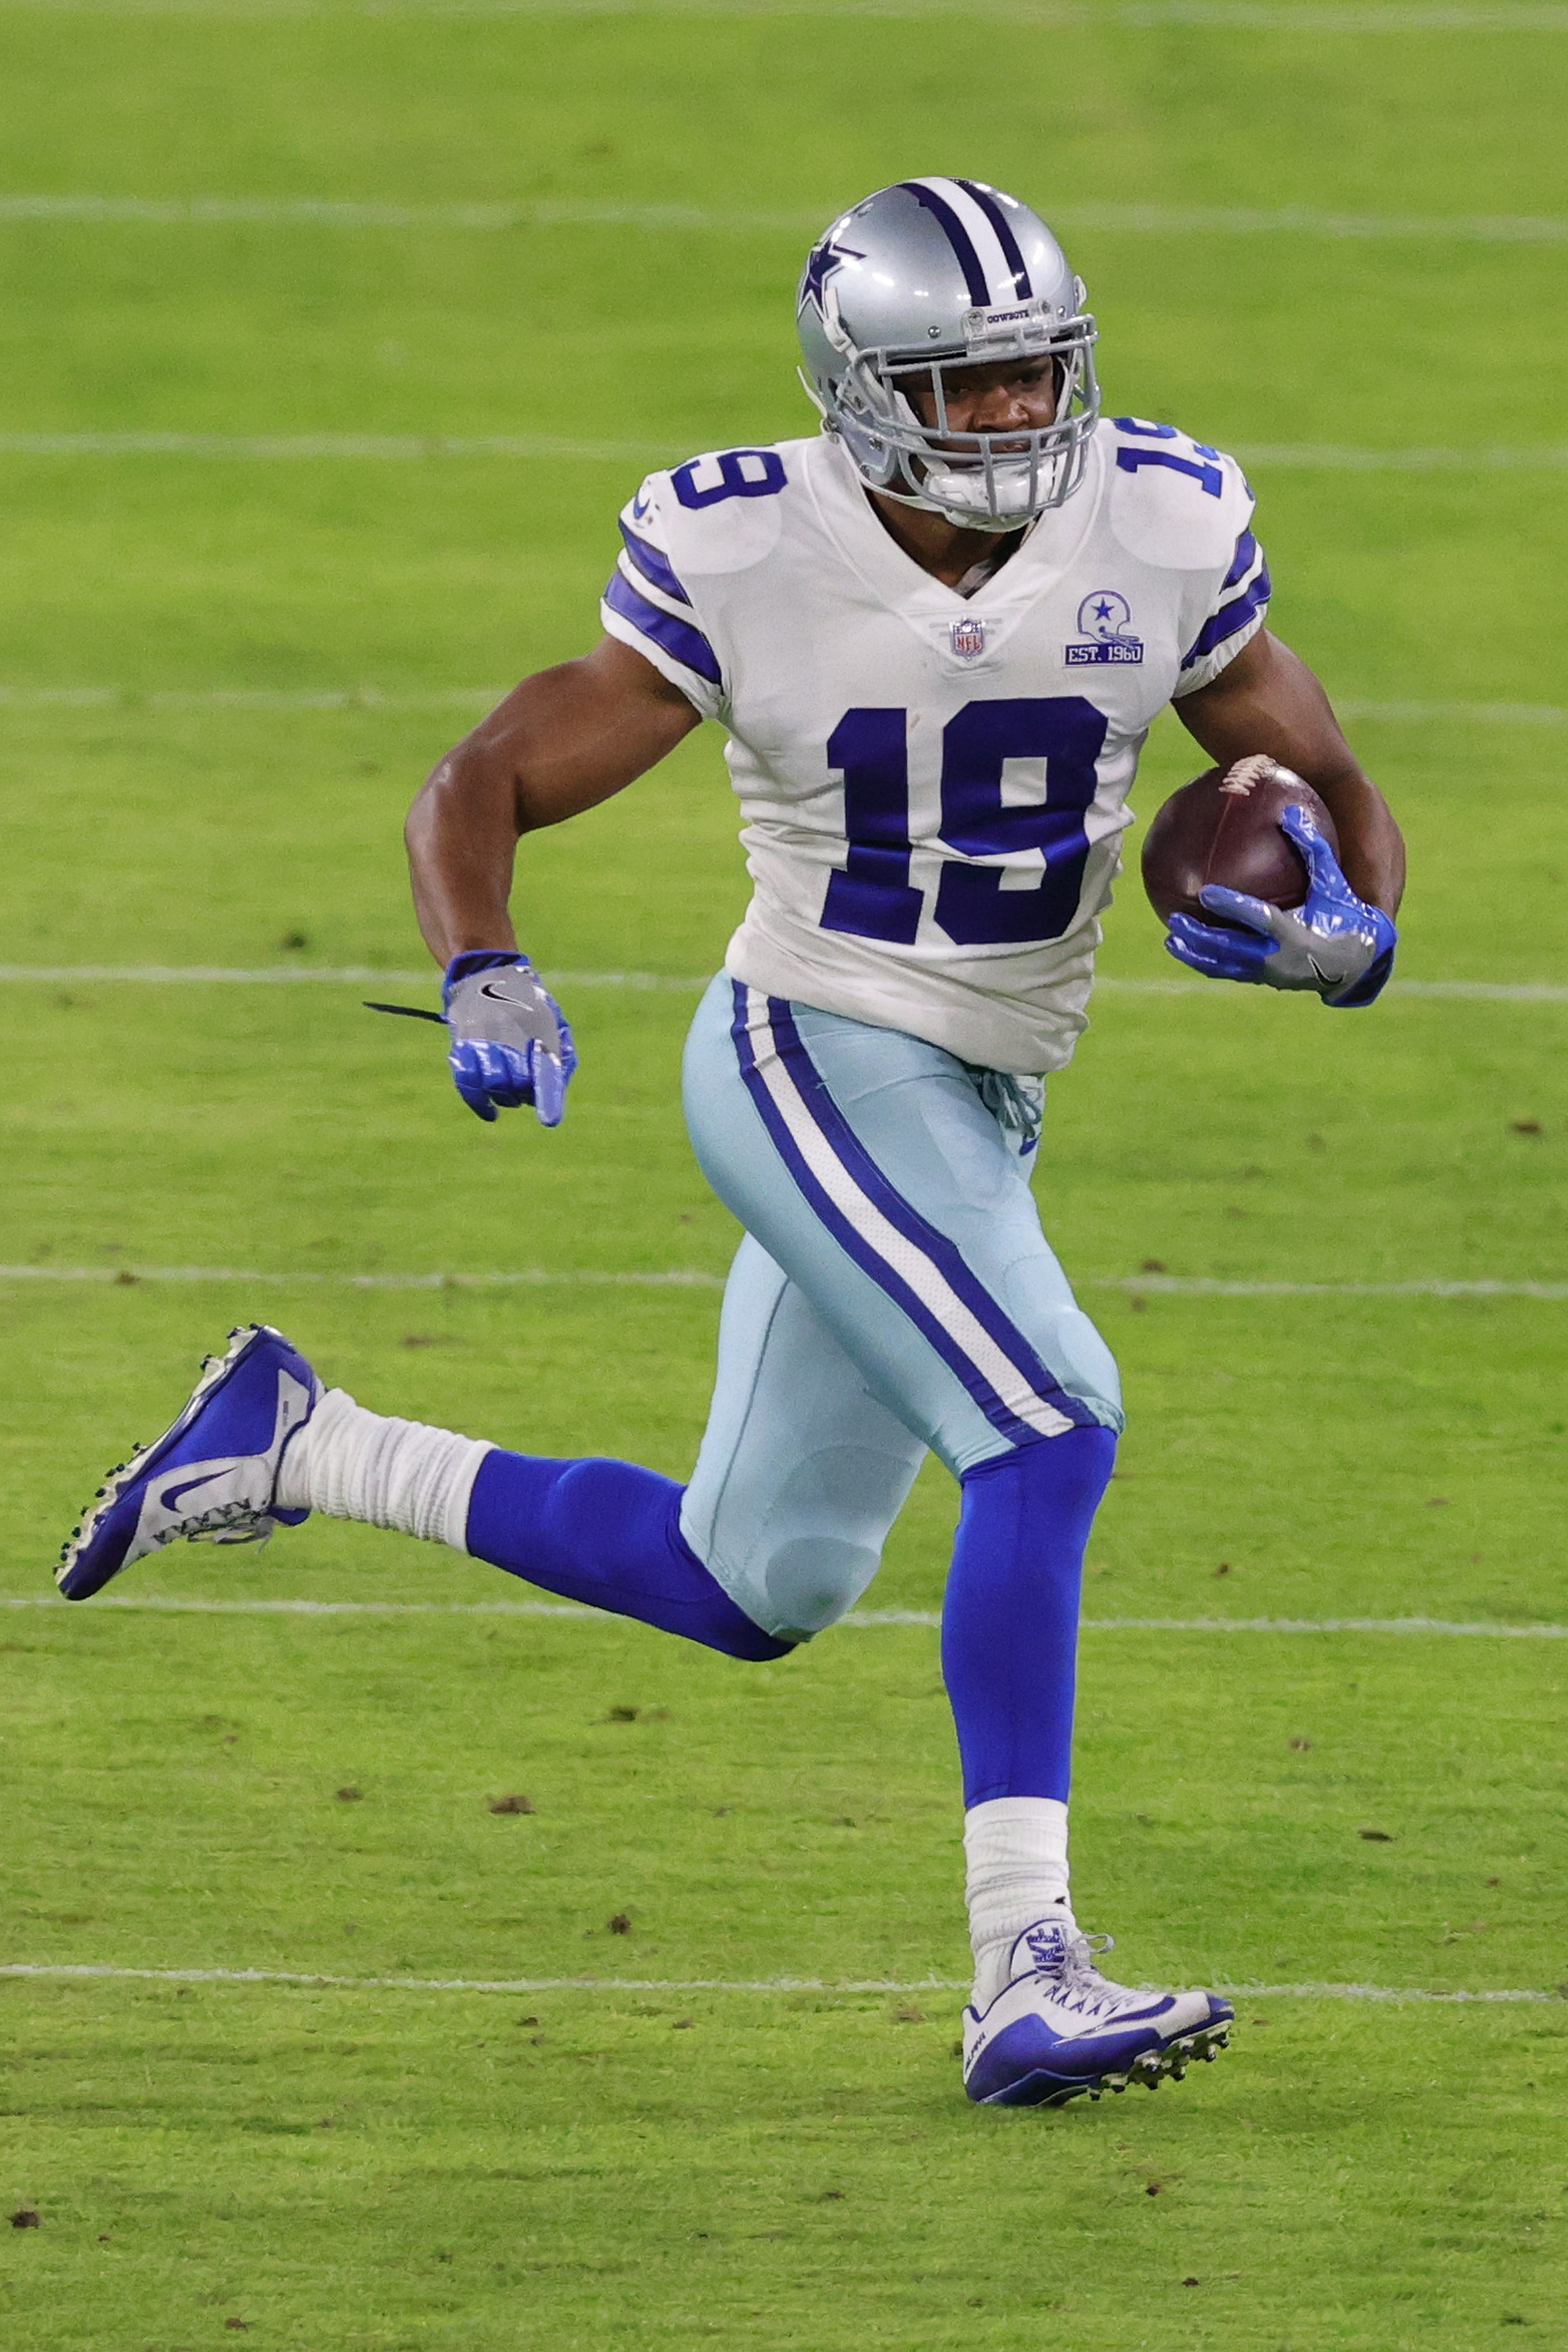 Wide receiver Amari Cooper #19 of the Dallas Cowboys rushes against the Baltimore Ravens during the second quarter at M&T Bank Stadium on December 8, 2020 in Baltimore, Maryland.